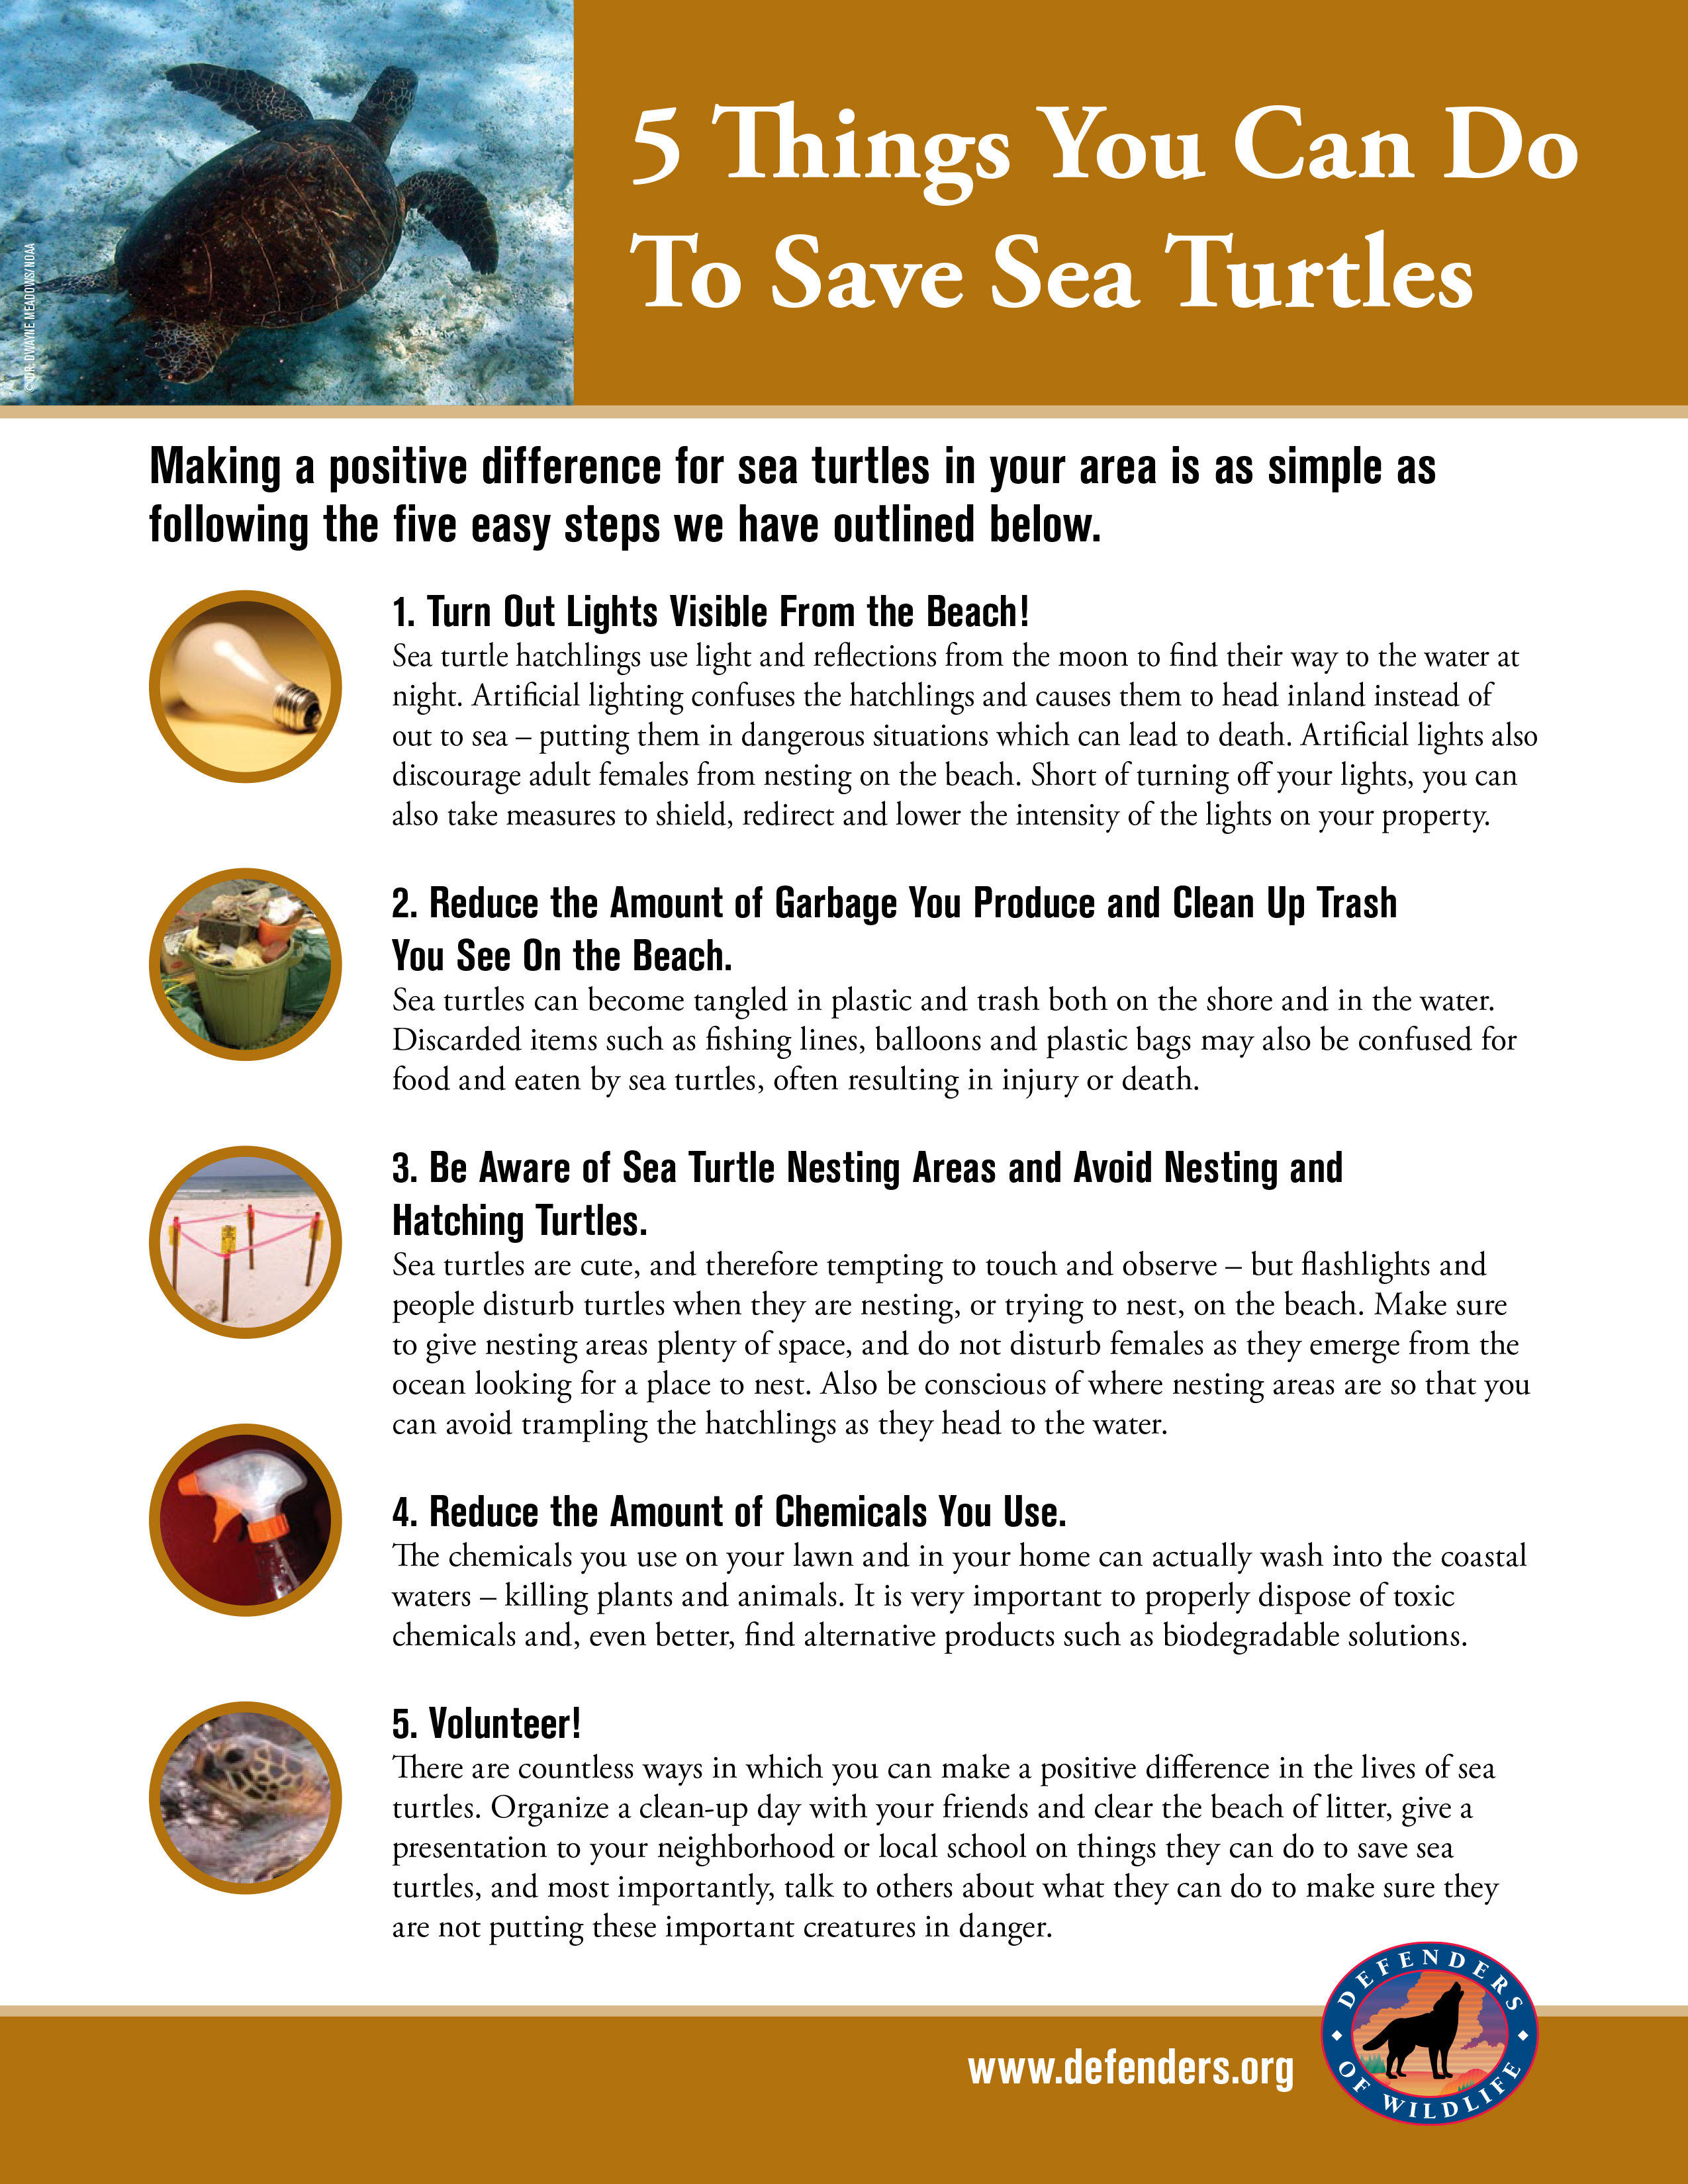 5 things you can do to save sea turtles